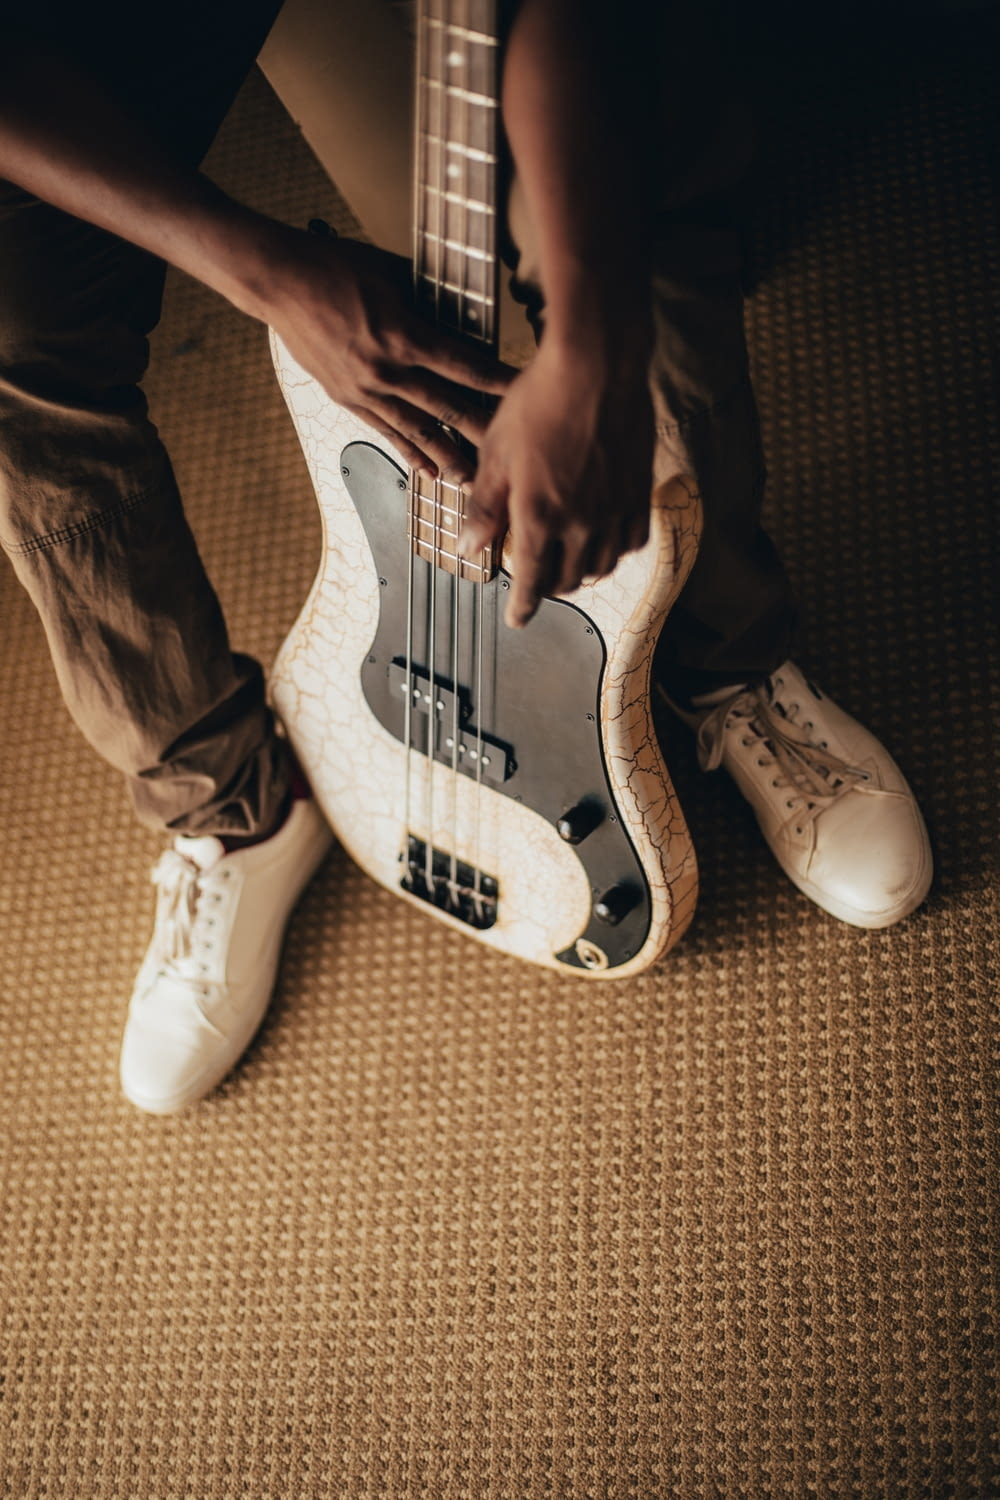 person holding white and black stratocaster electric guitar